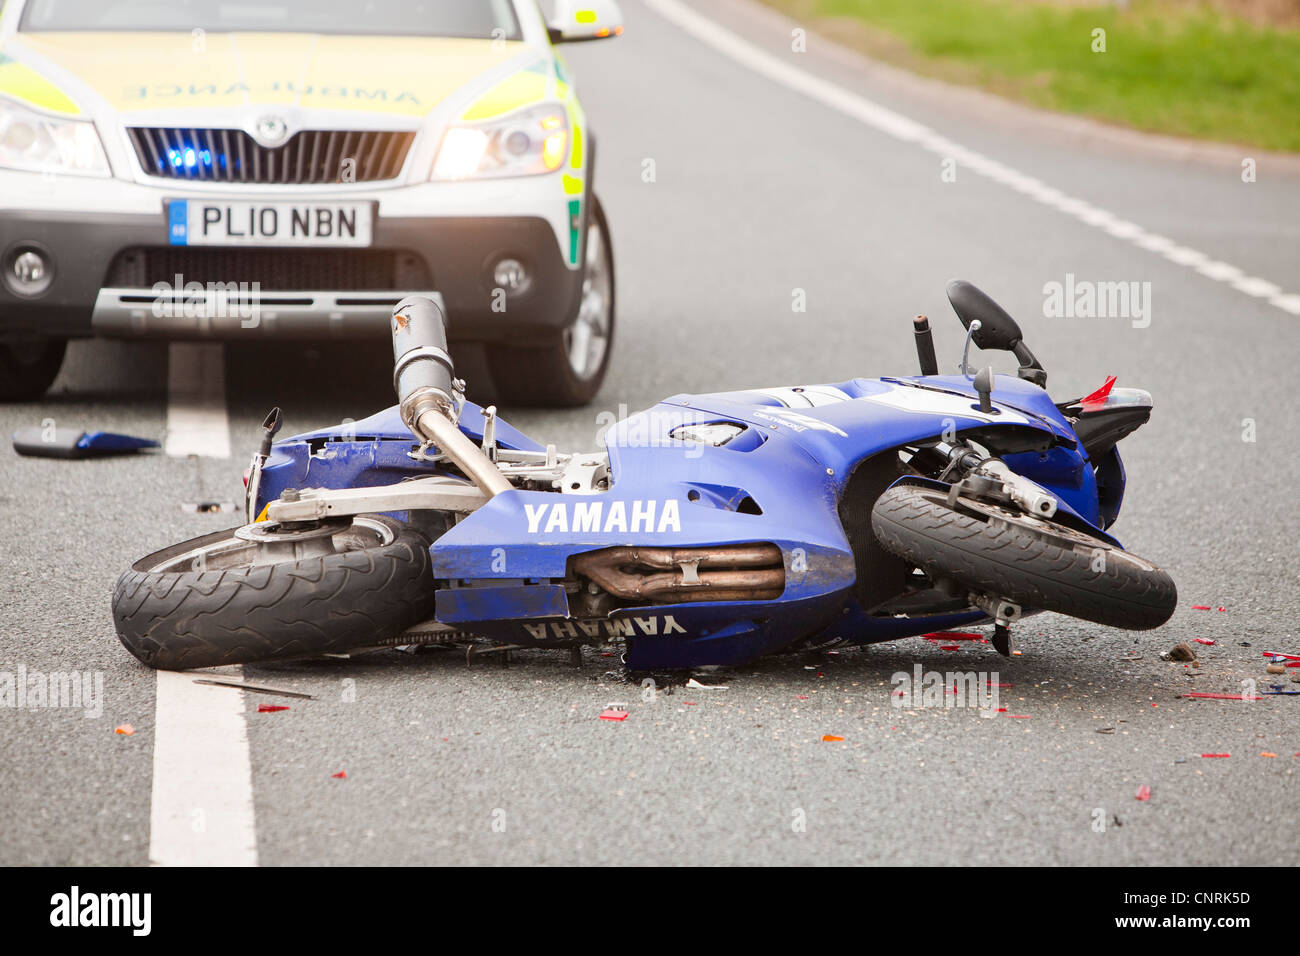 A crash on the A66 near Penrith, Cumbria, UK, involving a car and a motorbike. - Stock Image